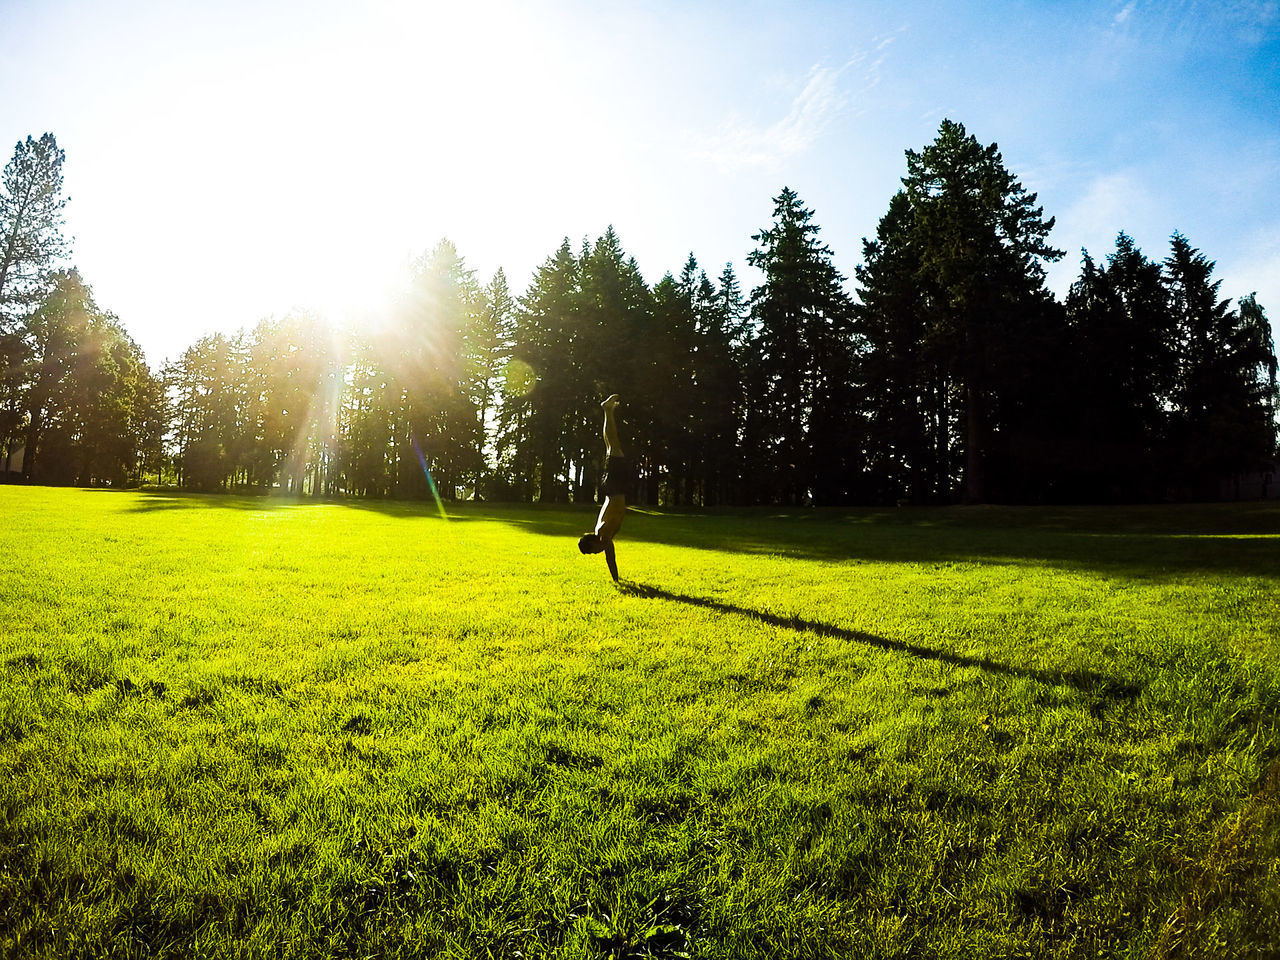 growth, tree, grass, nature, green color, sunlight, field, leisure activity, beauty in nature, tranquility, real people, lifestyles, scenics, sport, men, outdoors, day, one person, sky, sportsman, people